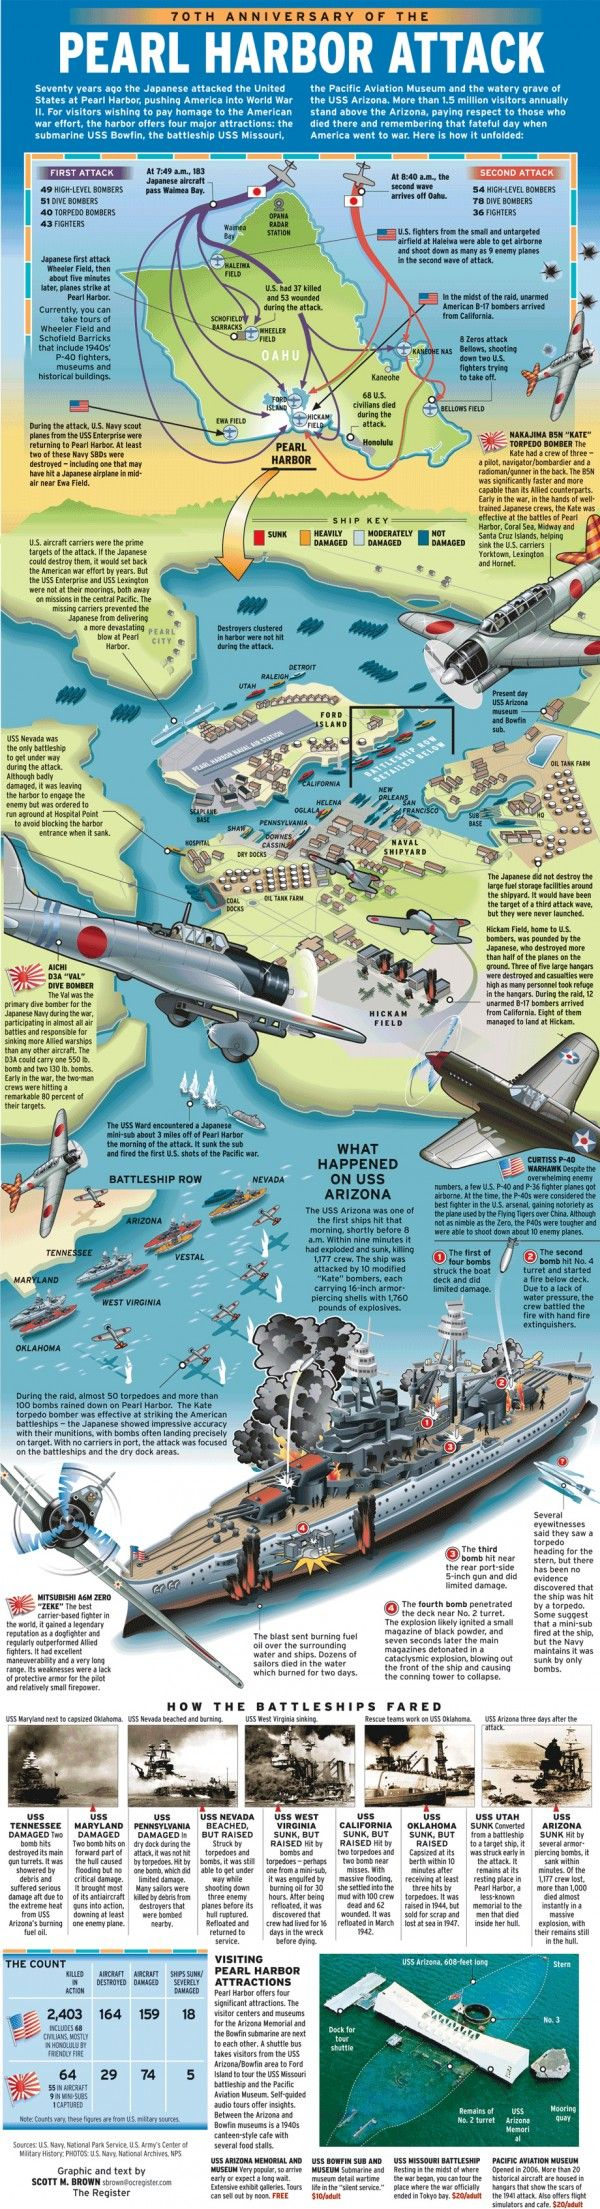 A map of the whole pearl harbor attack.